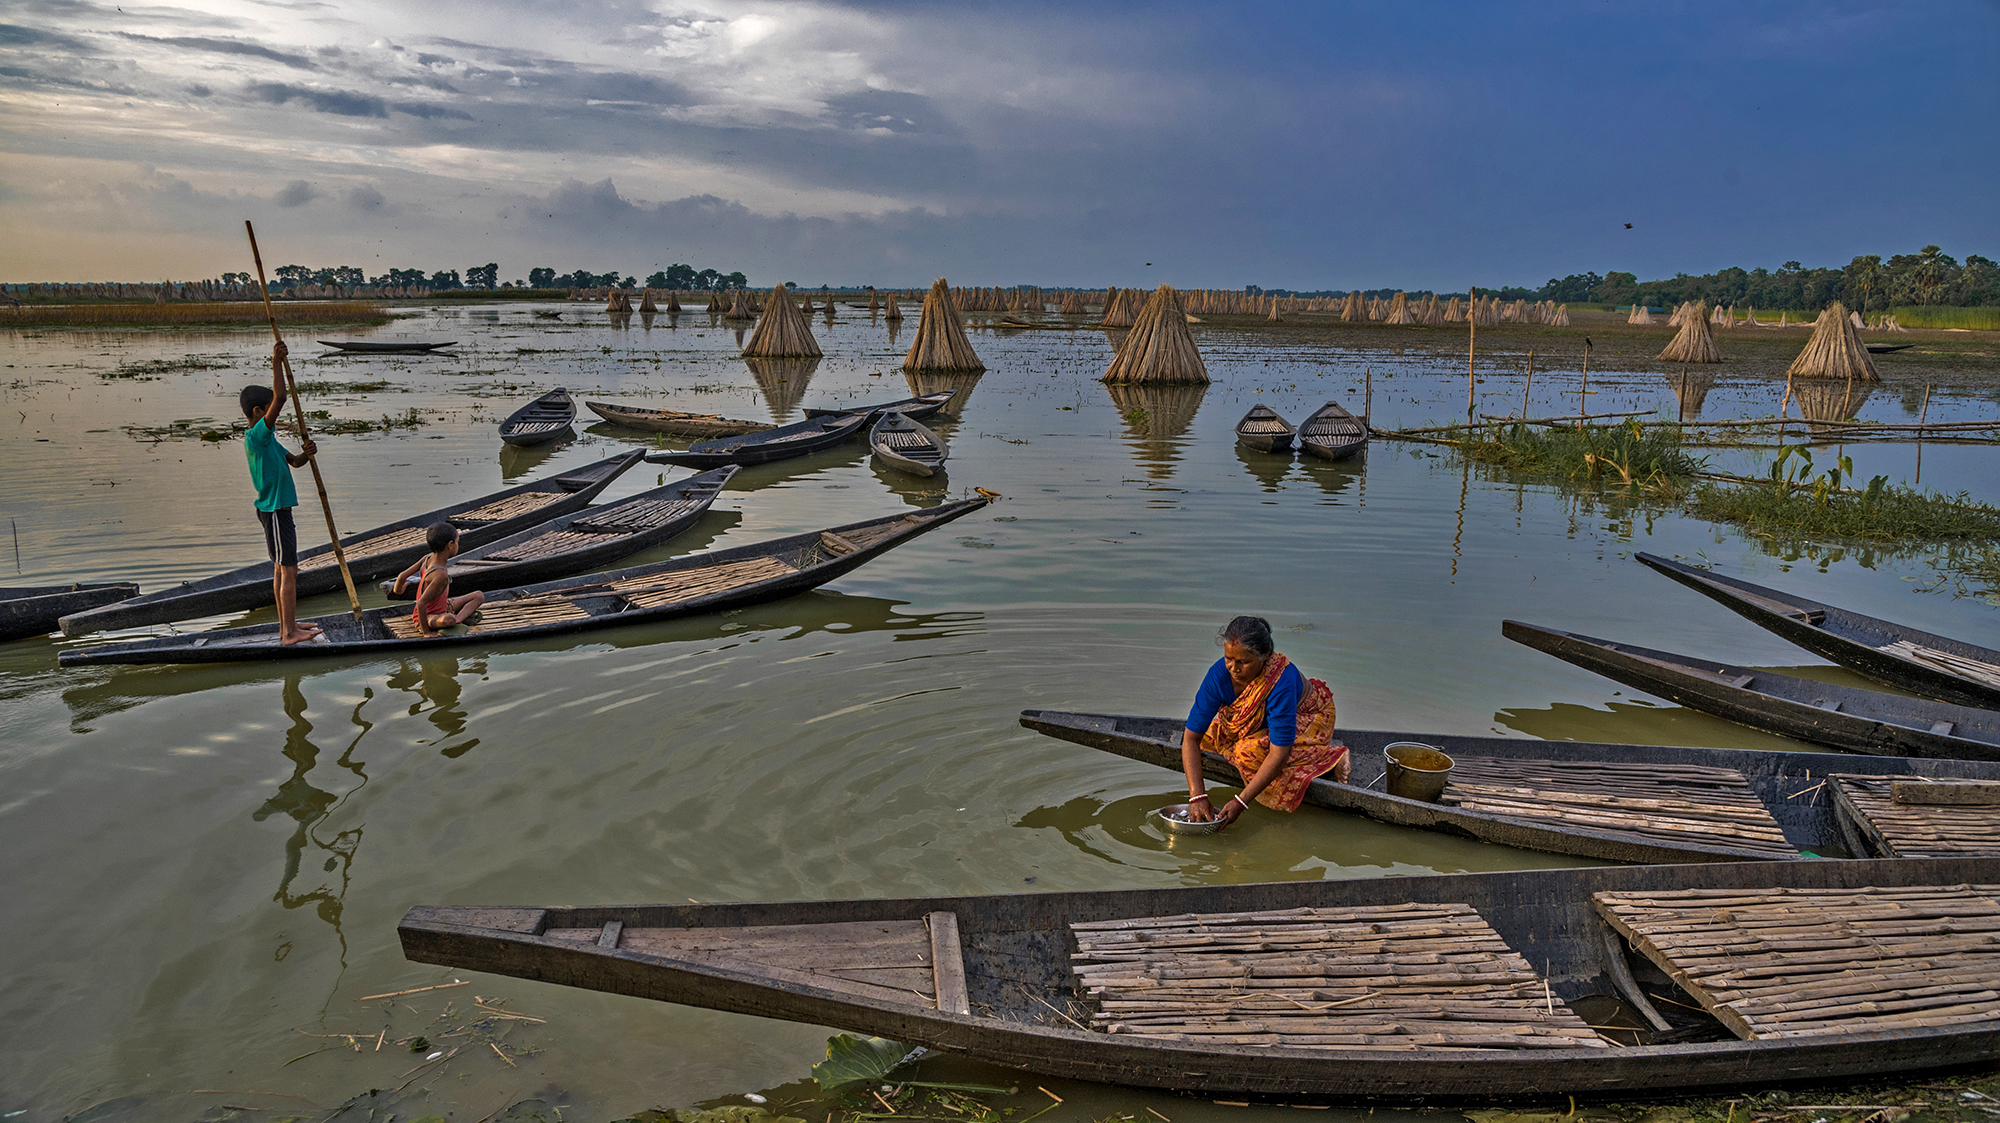 Bartir bill in West Bengal, India is the place during the monsoons not only it  is a place for jute cultivation which heavily depends on a good monsoon but also monsoon brings with it a myraid of activities in this region. This place literally blooms during the monsoon.